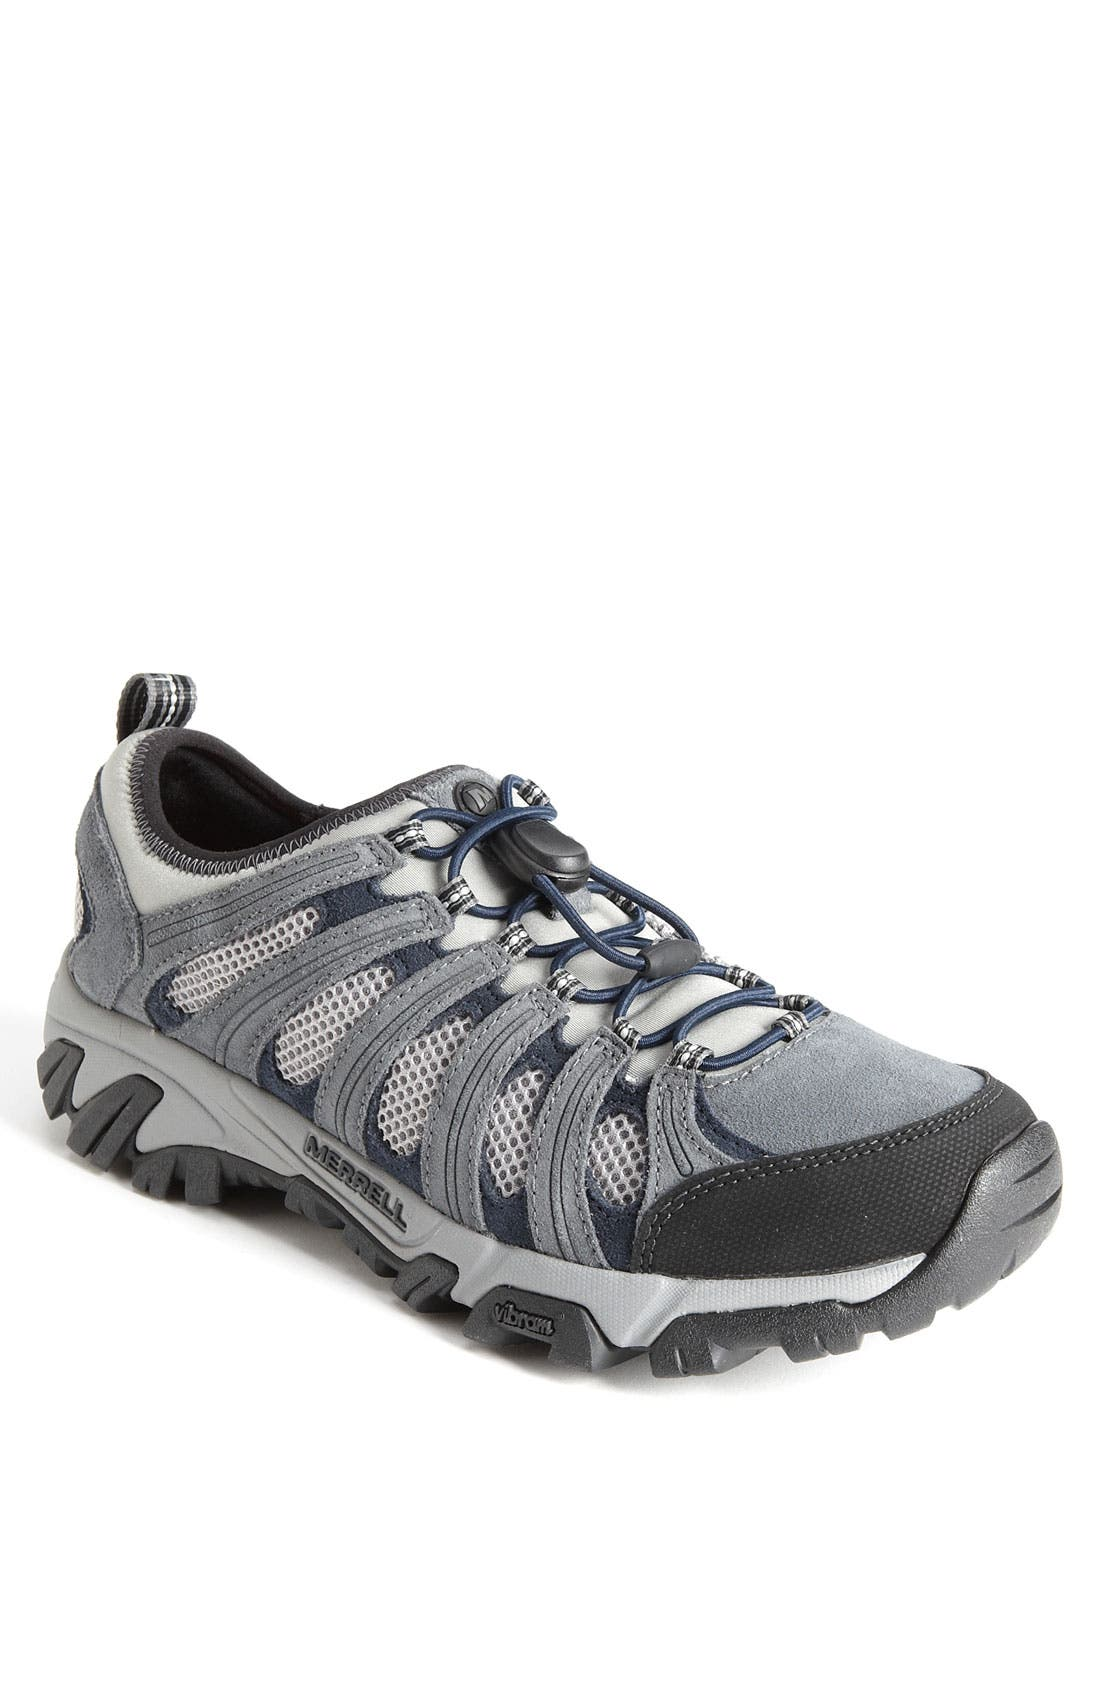 Alternate Image 1 Selected - Merrell 'Geomorph Maze Stretch' Hiking Shoe (Men)